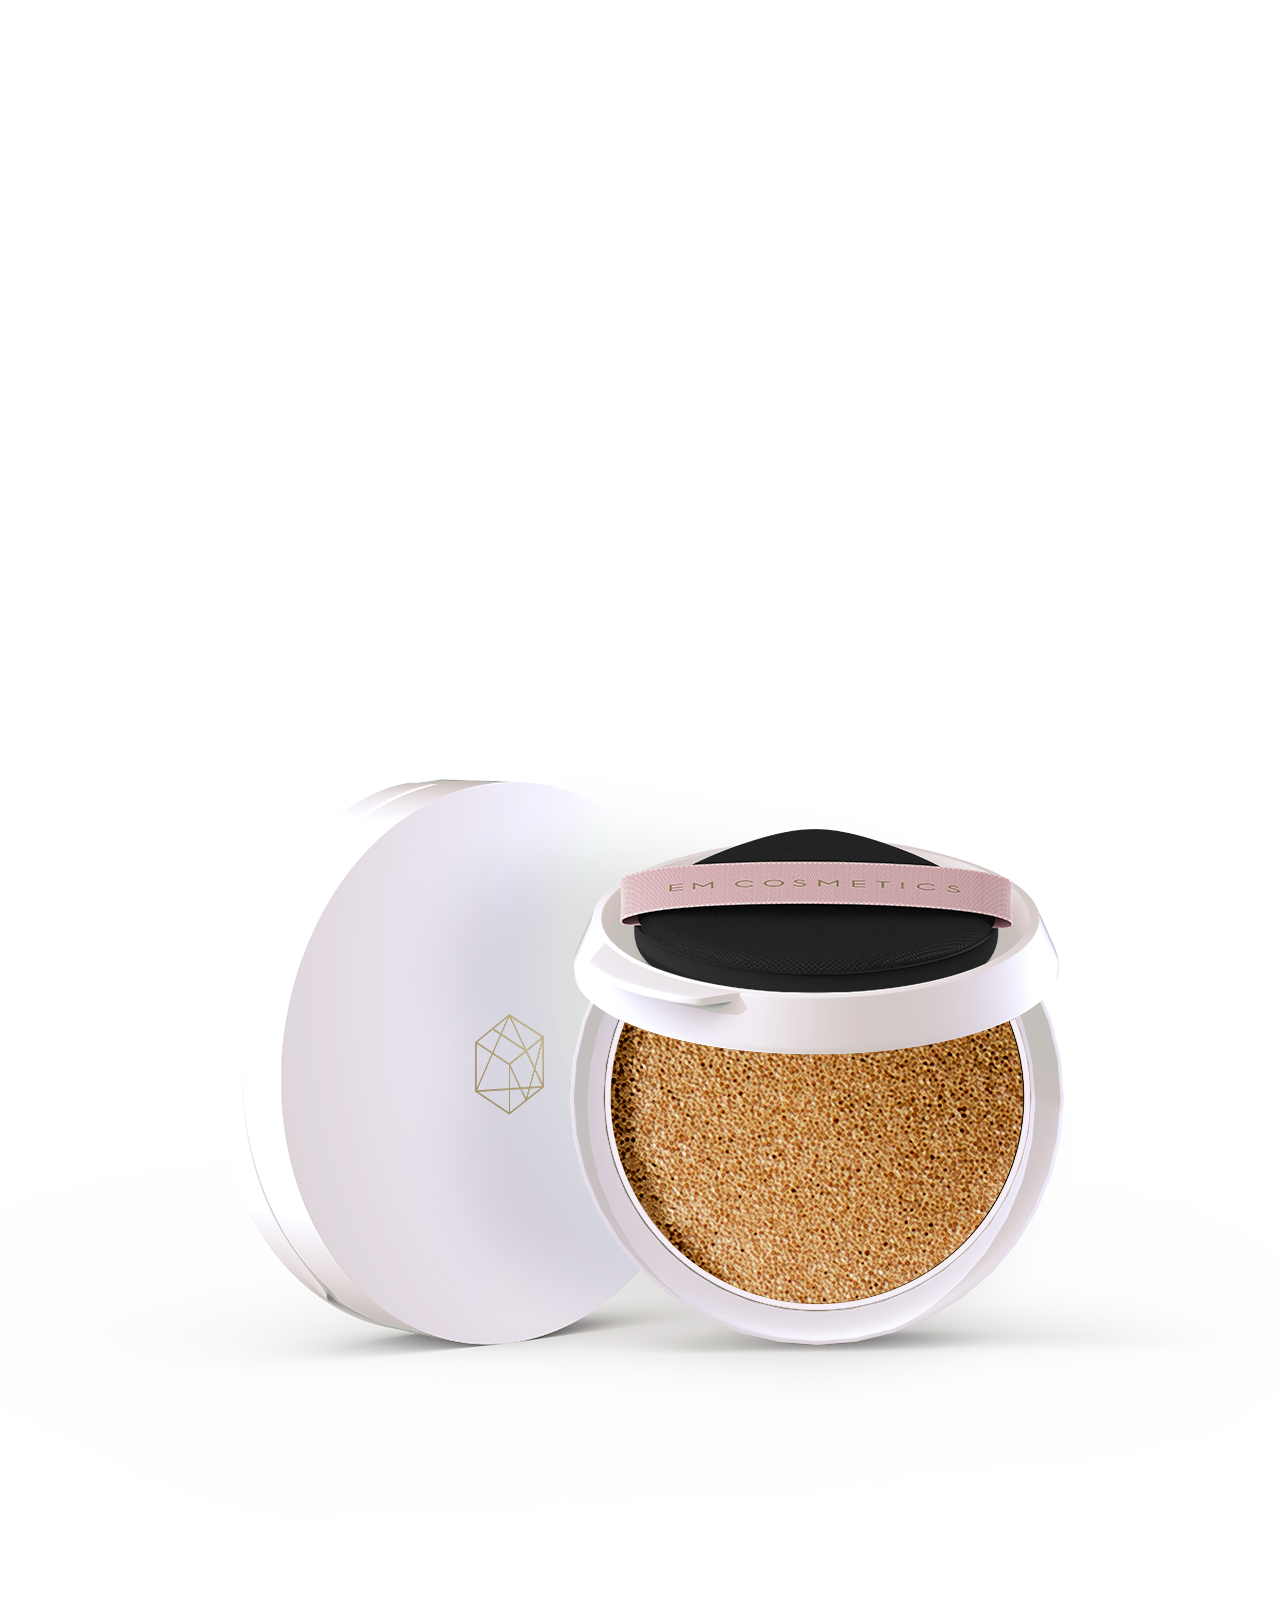 daydream-cushion-tinted-spf-sweet-secret-compact